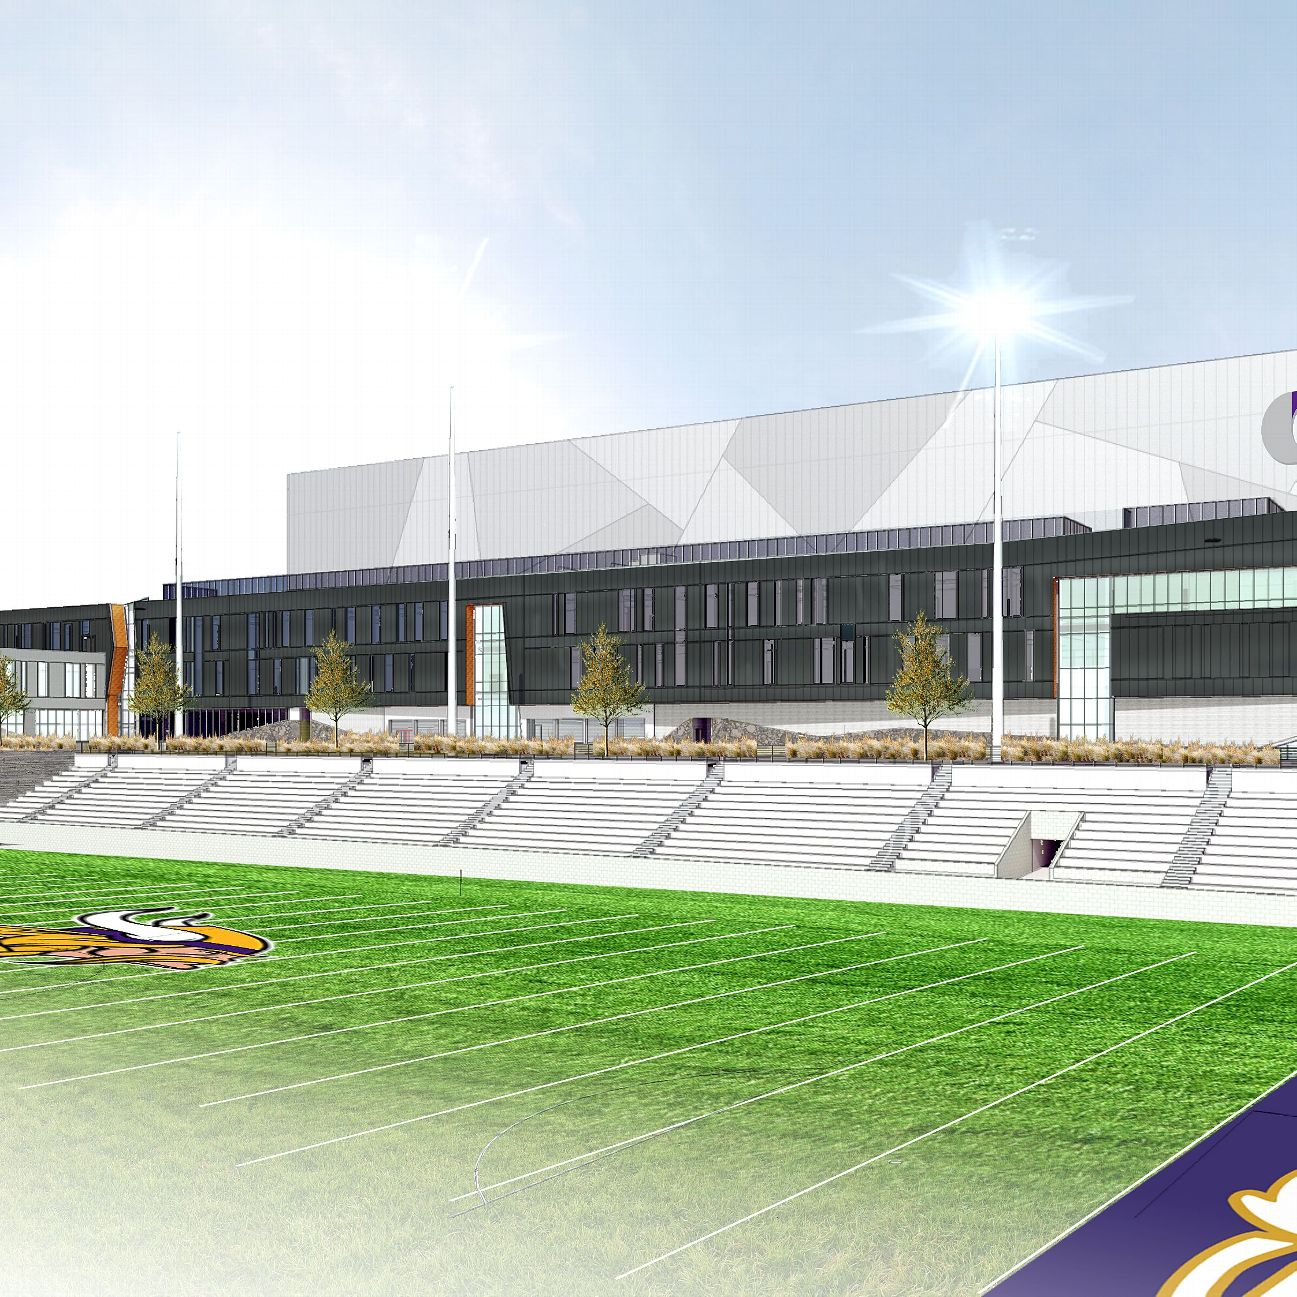 Minneapolis Garage Builders News Construction Blog: For New Headquarters, Vikings Building Their Version Of